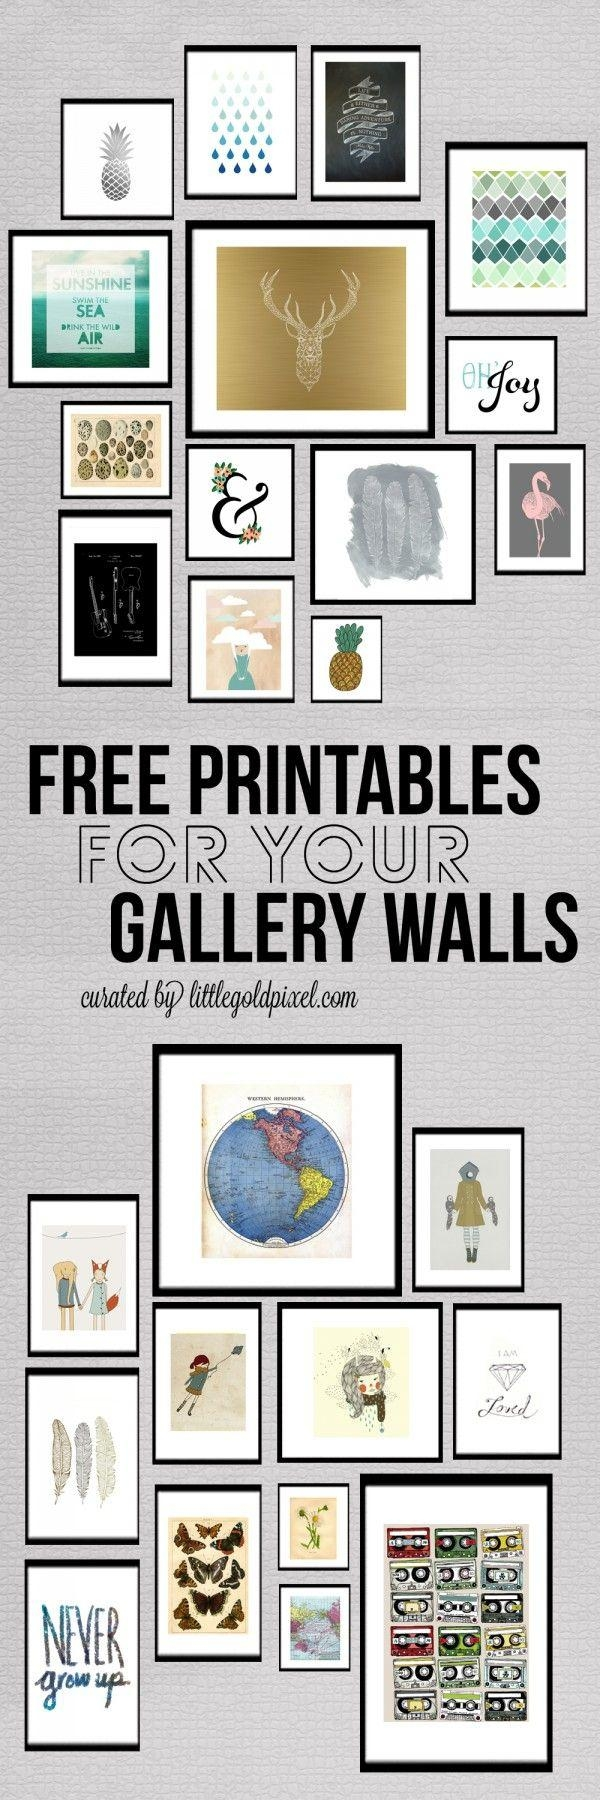 Best 10+ Diy Wall Art Ideas On Pinterest | Diy Art, Diy Wall Decor Pertaining To Pinterest Diy Wall Art (Image 5 of 20)